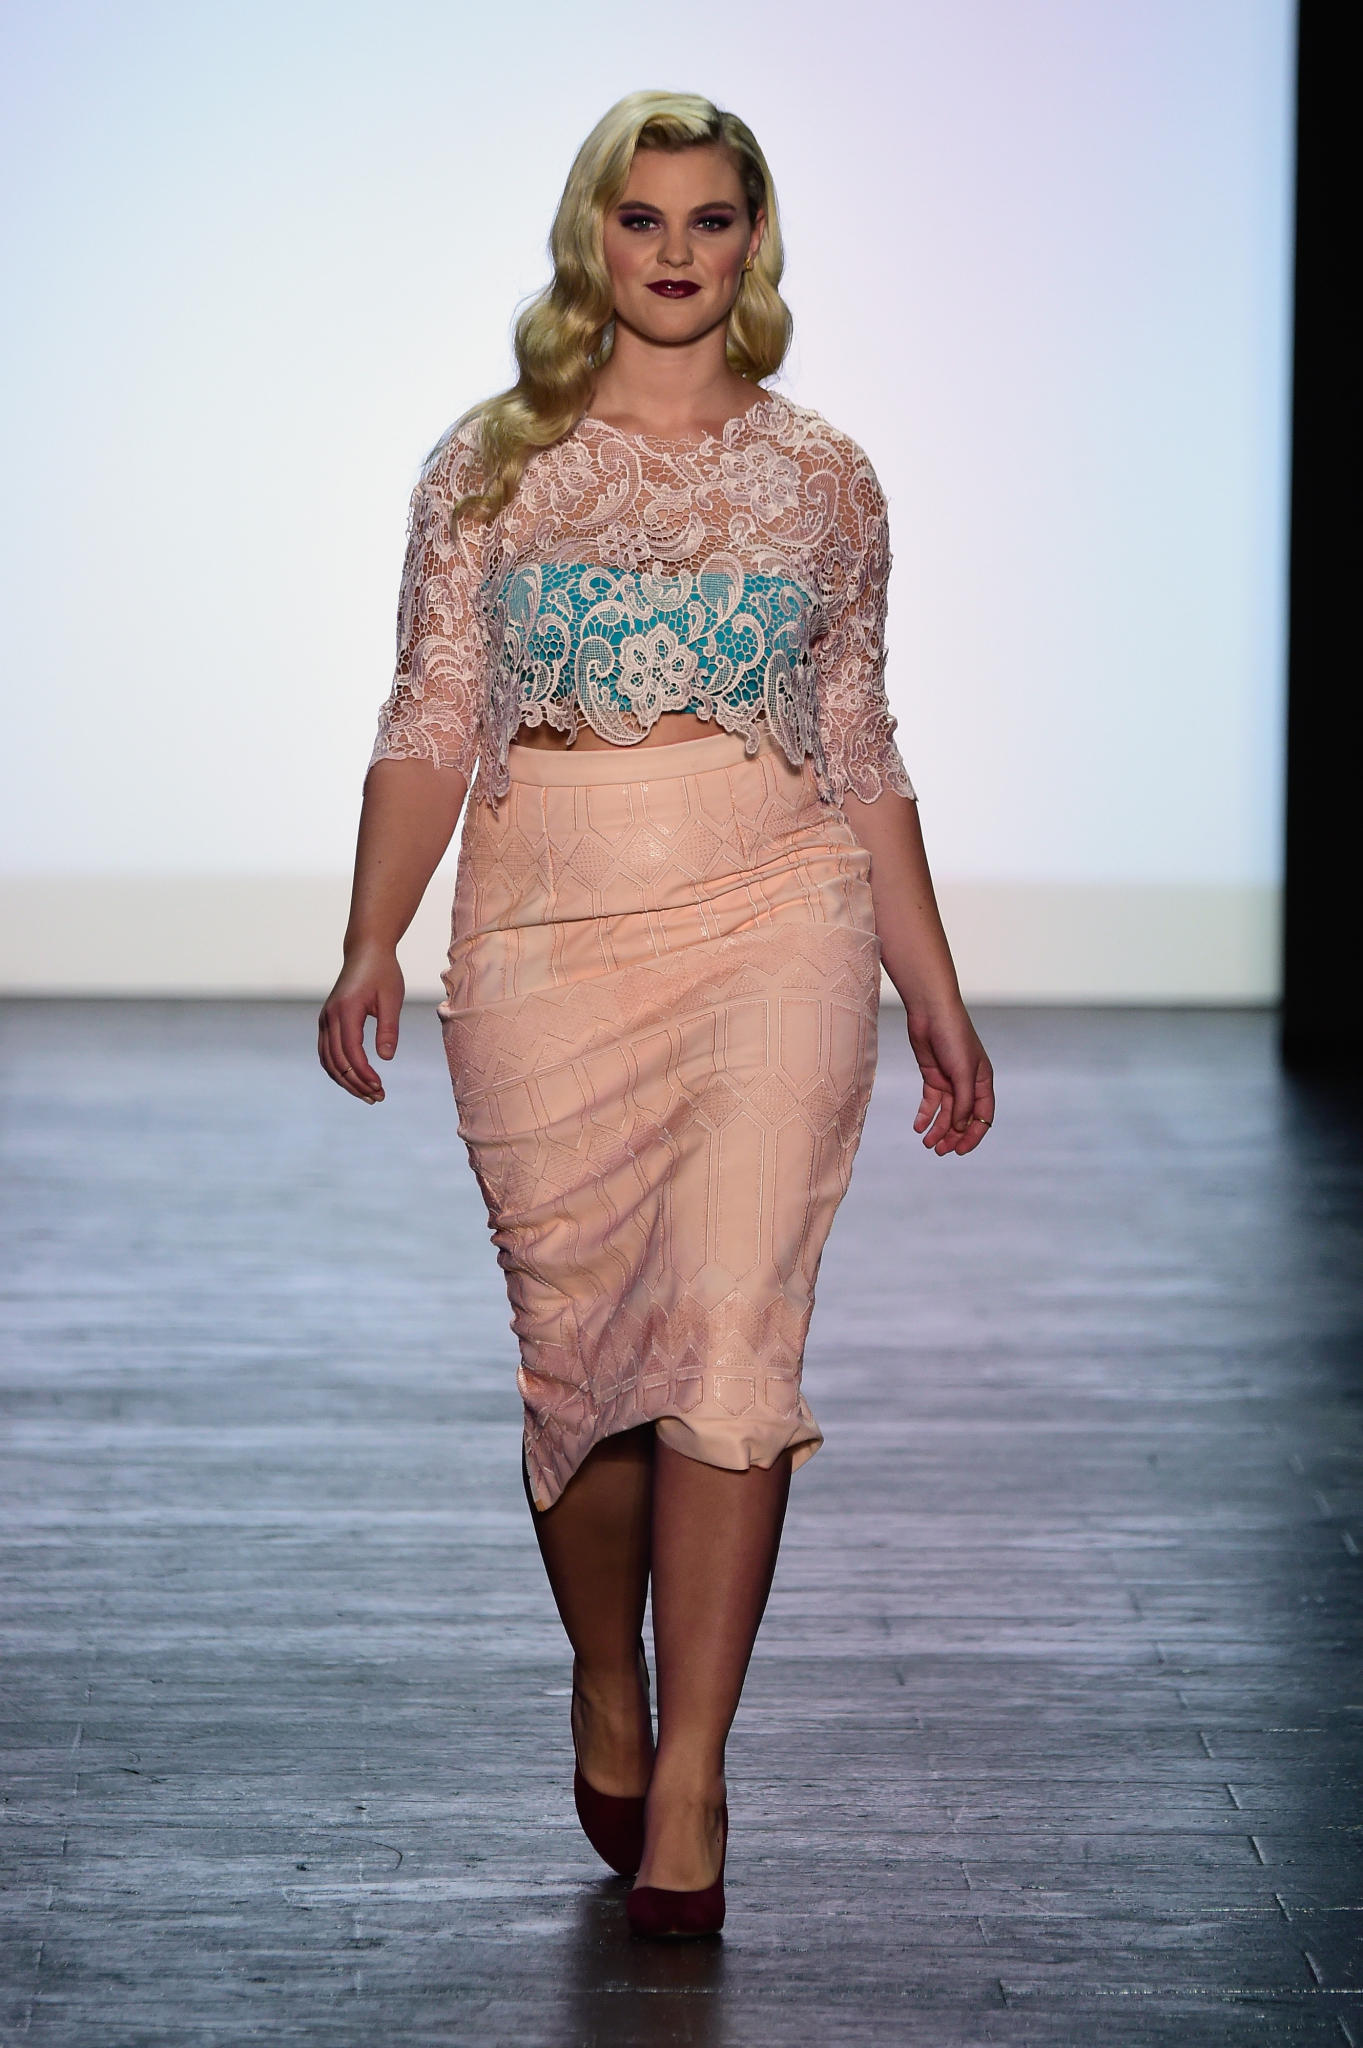 MAG Mode Plus-Size-Mode ist total angesagt: Ashley Nell Tipton gewinnt Project Runway